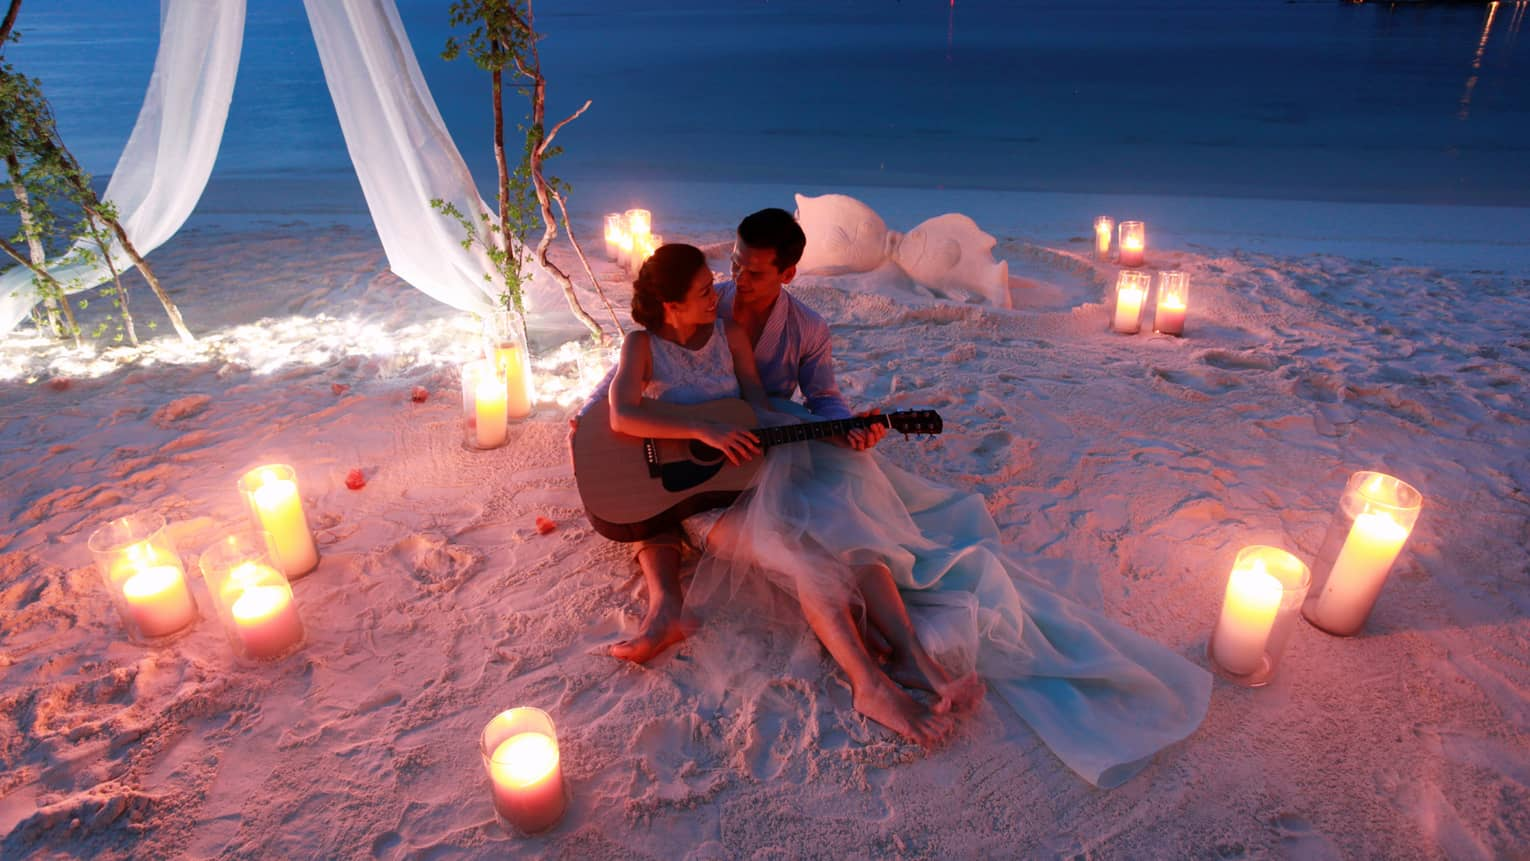 Man and woman hold guitar on sand beach surrounded by candles at night